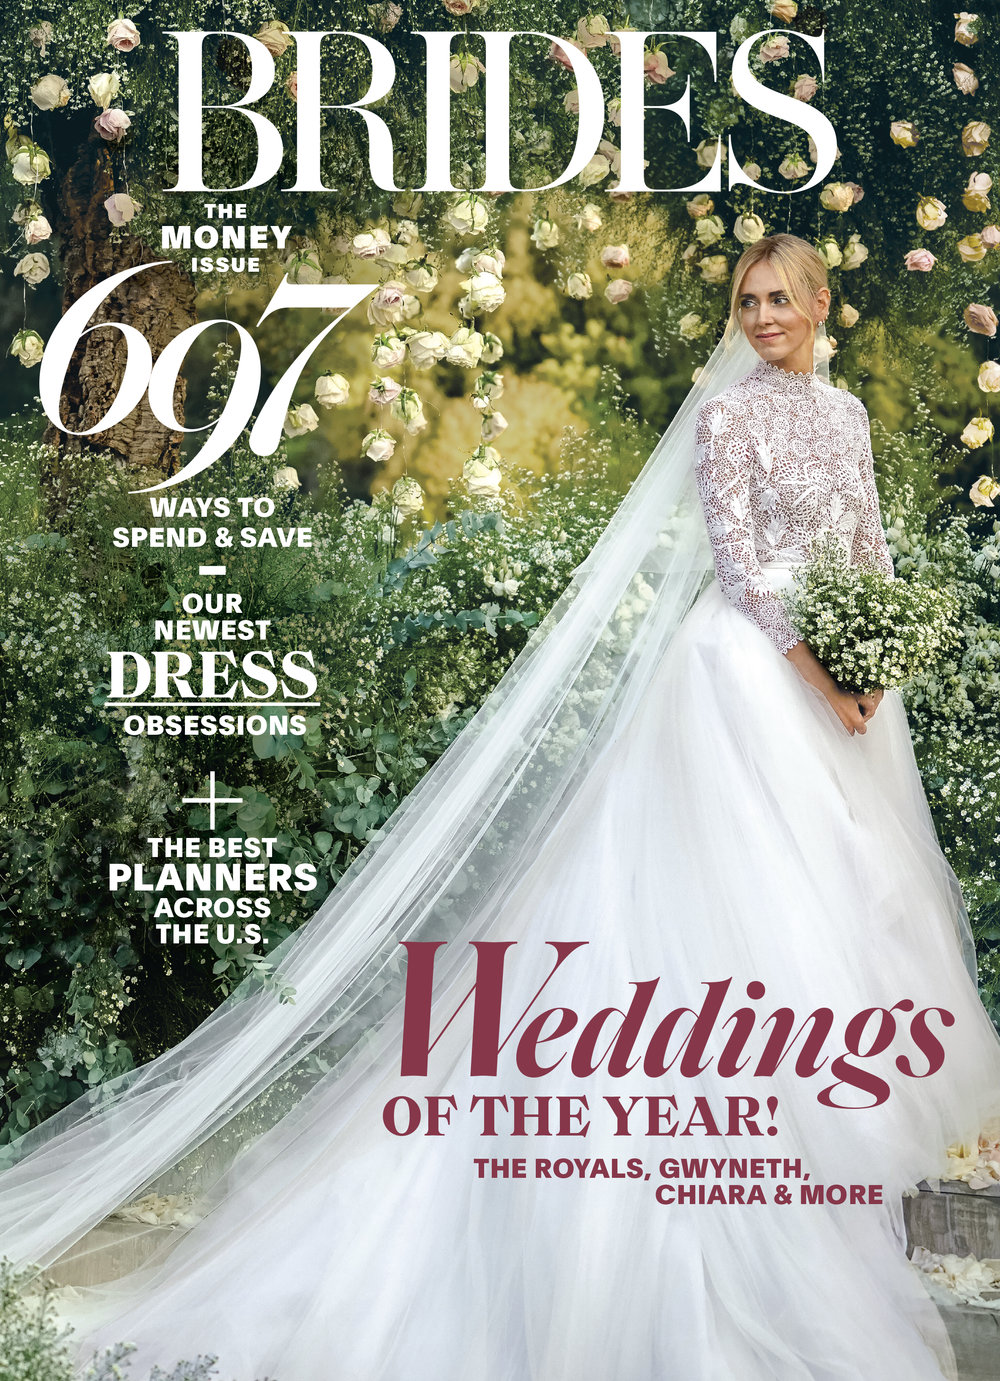 Brides 2018 | Named a top wedding planner in the USA